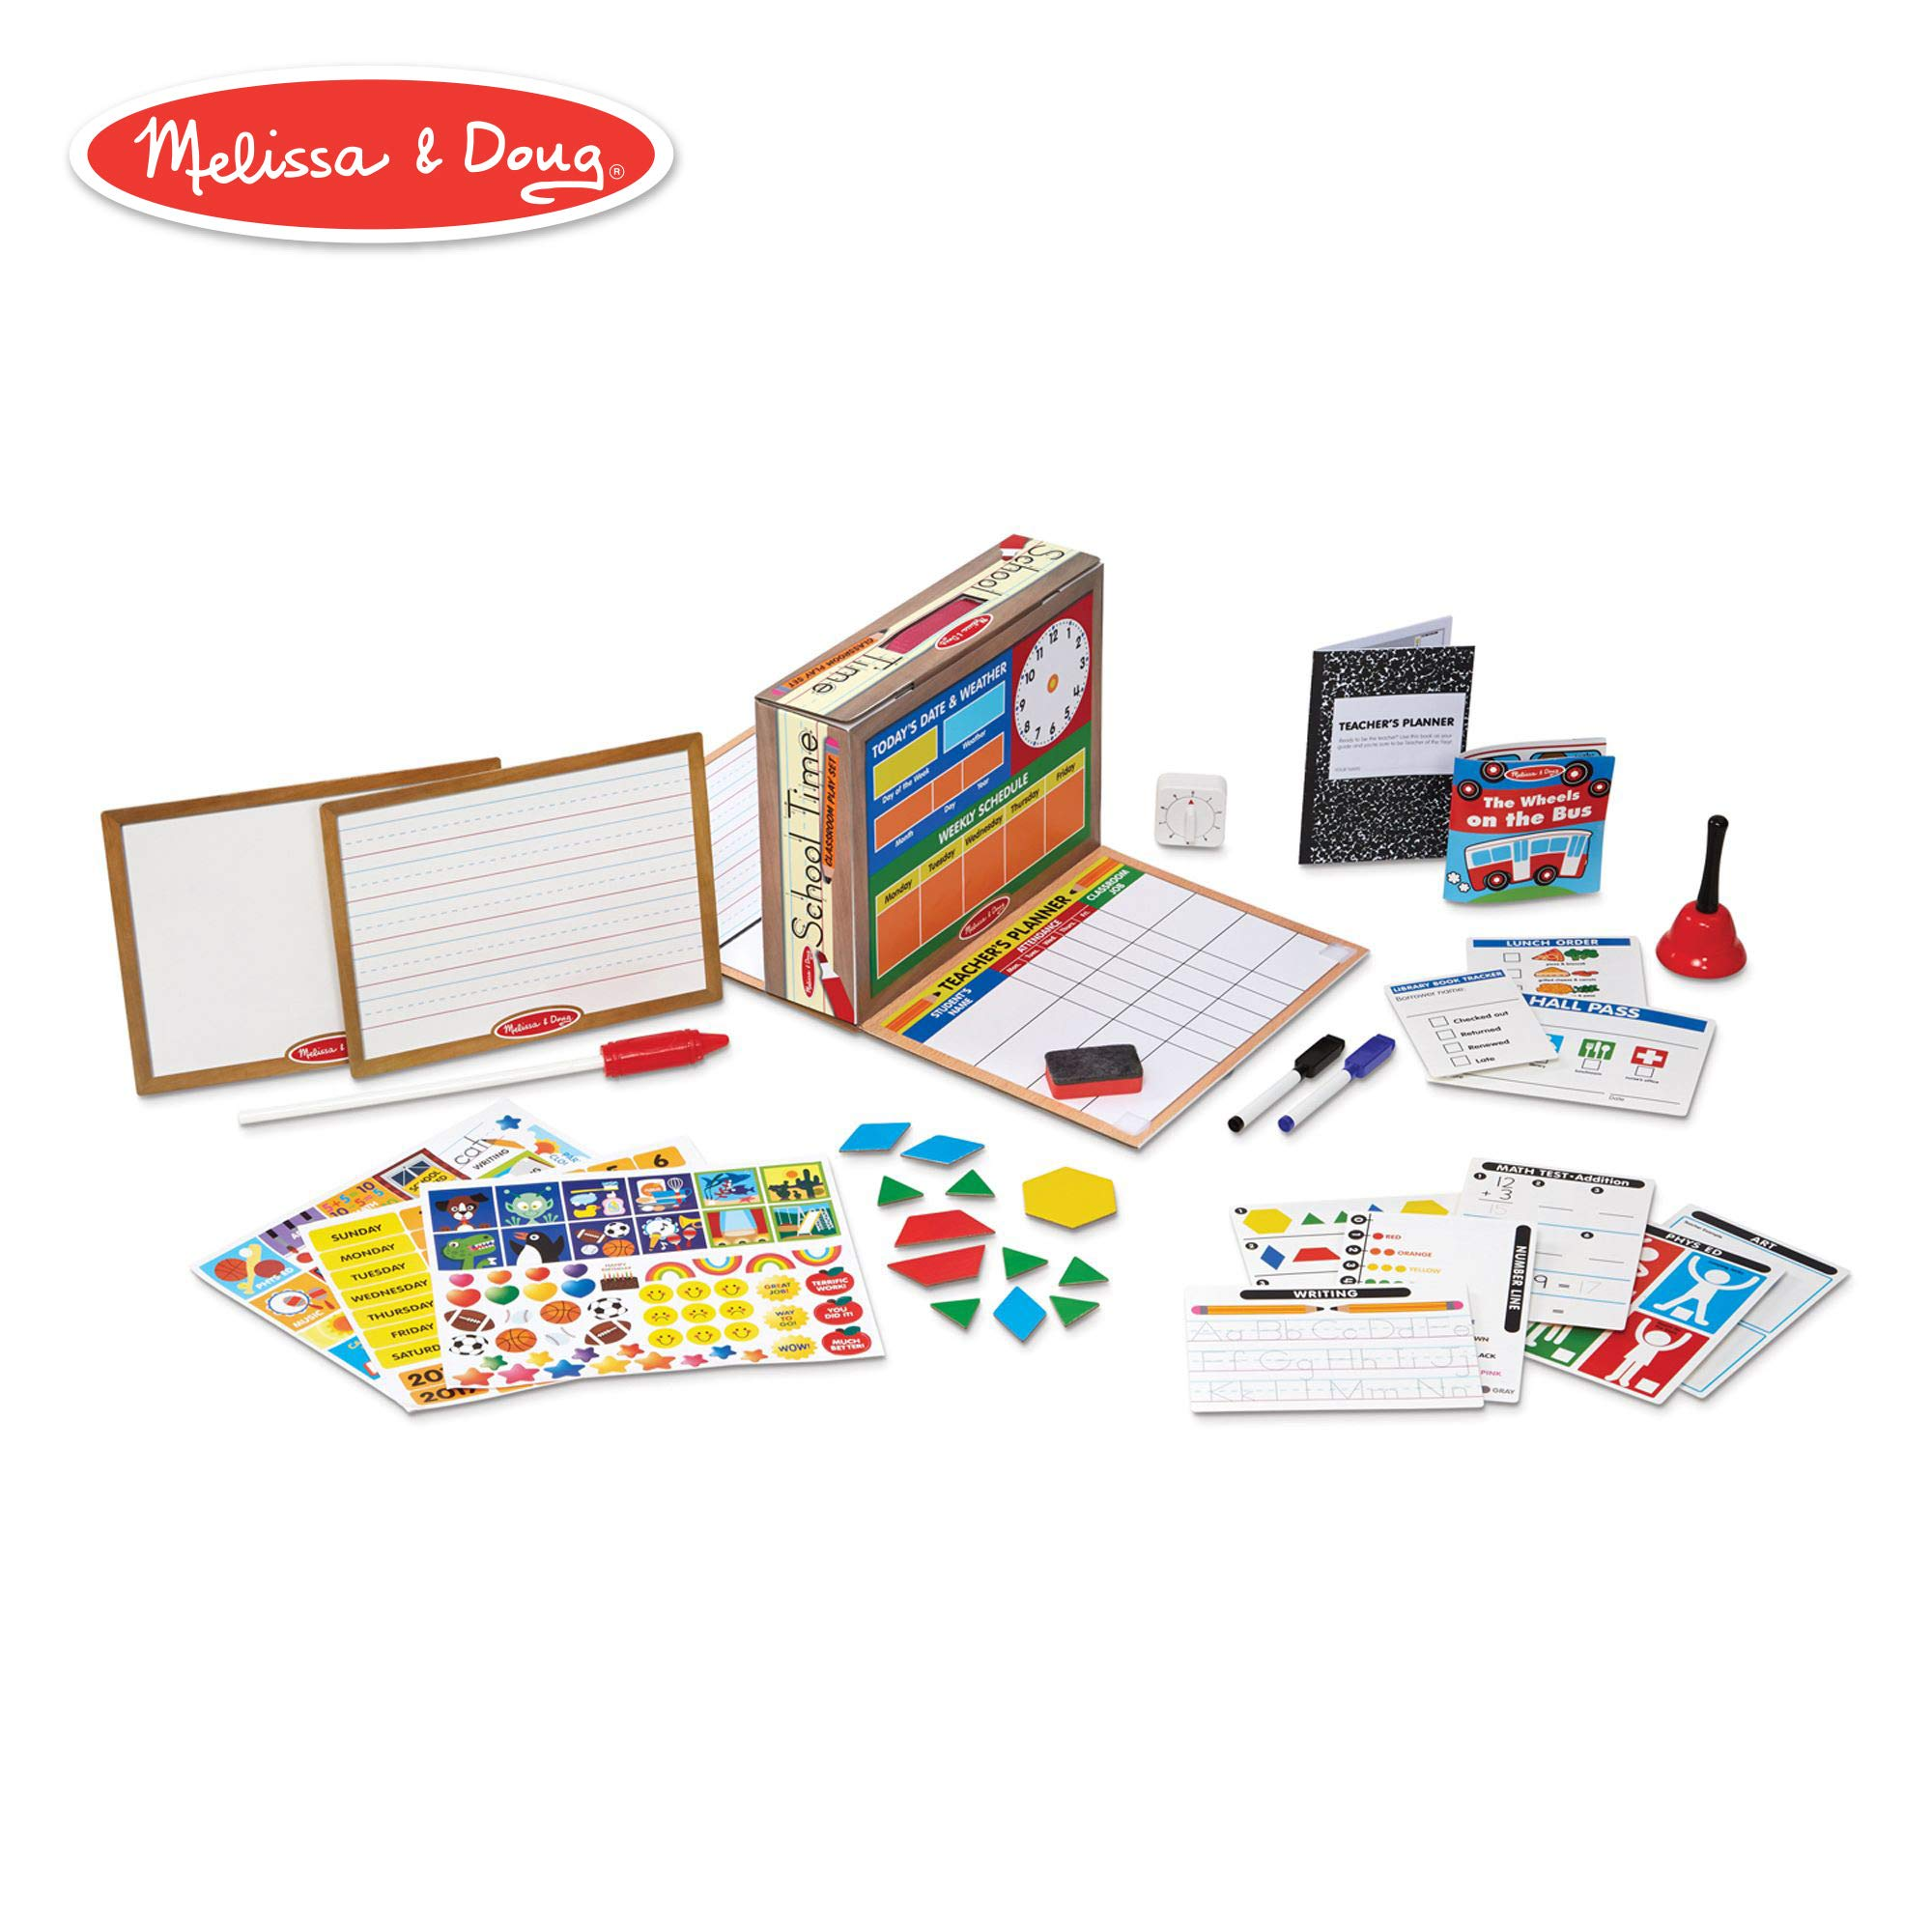 Melissa & Doug School Time! Classroom Play Set (Role-Play Center, Reusable Double-Sided Boards, Easy Storage Box, 150+ Pieces, 13.5'' H x 10.5'' W x 4'' L) by Melissa & Doug (Image #1)